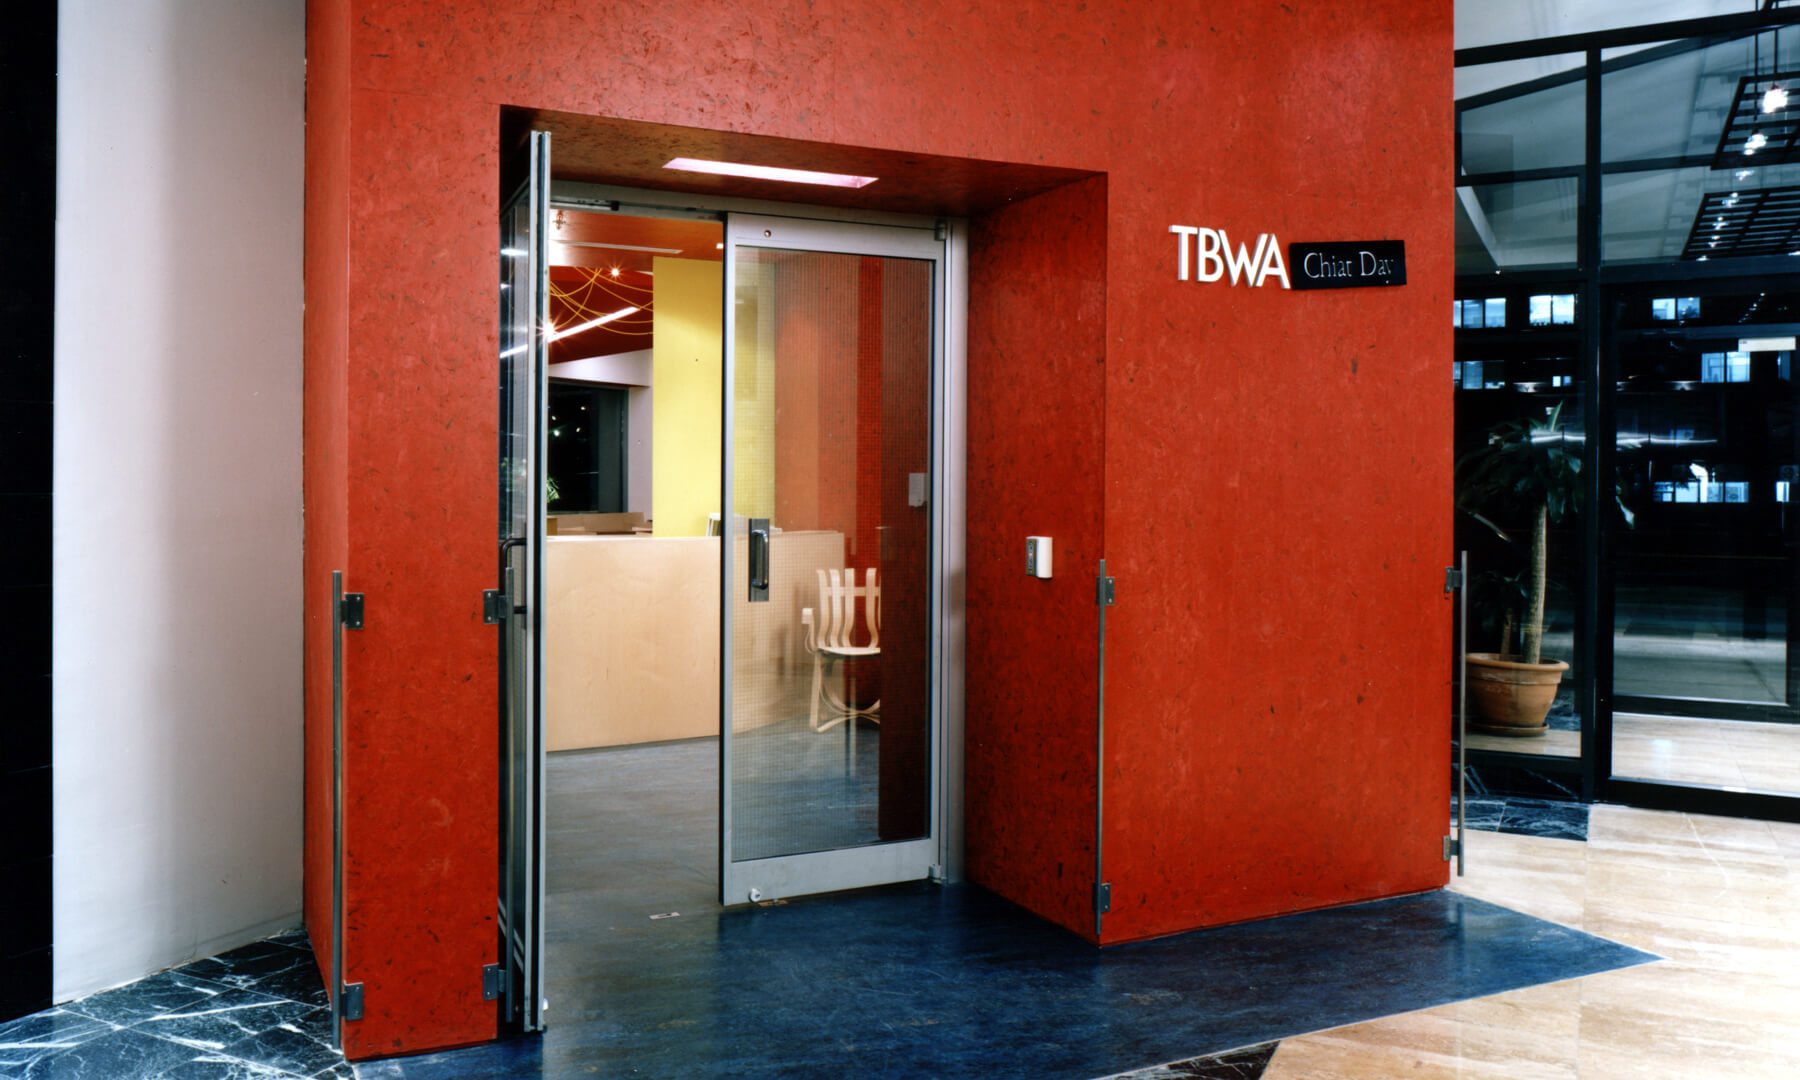 TBWA/Chiat Day - 02